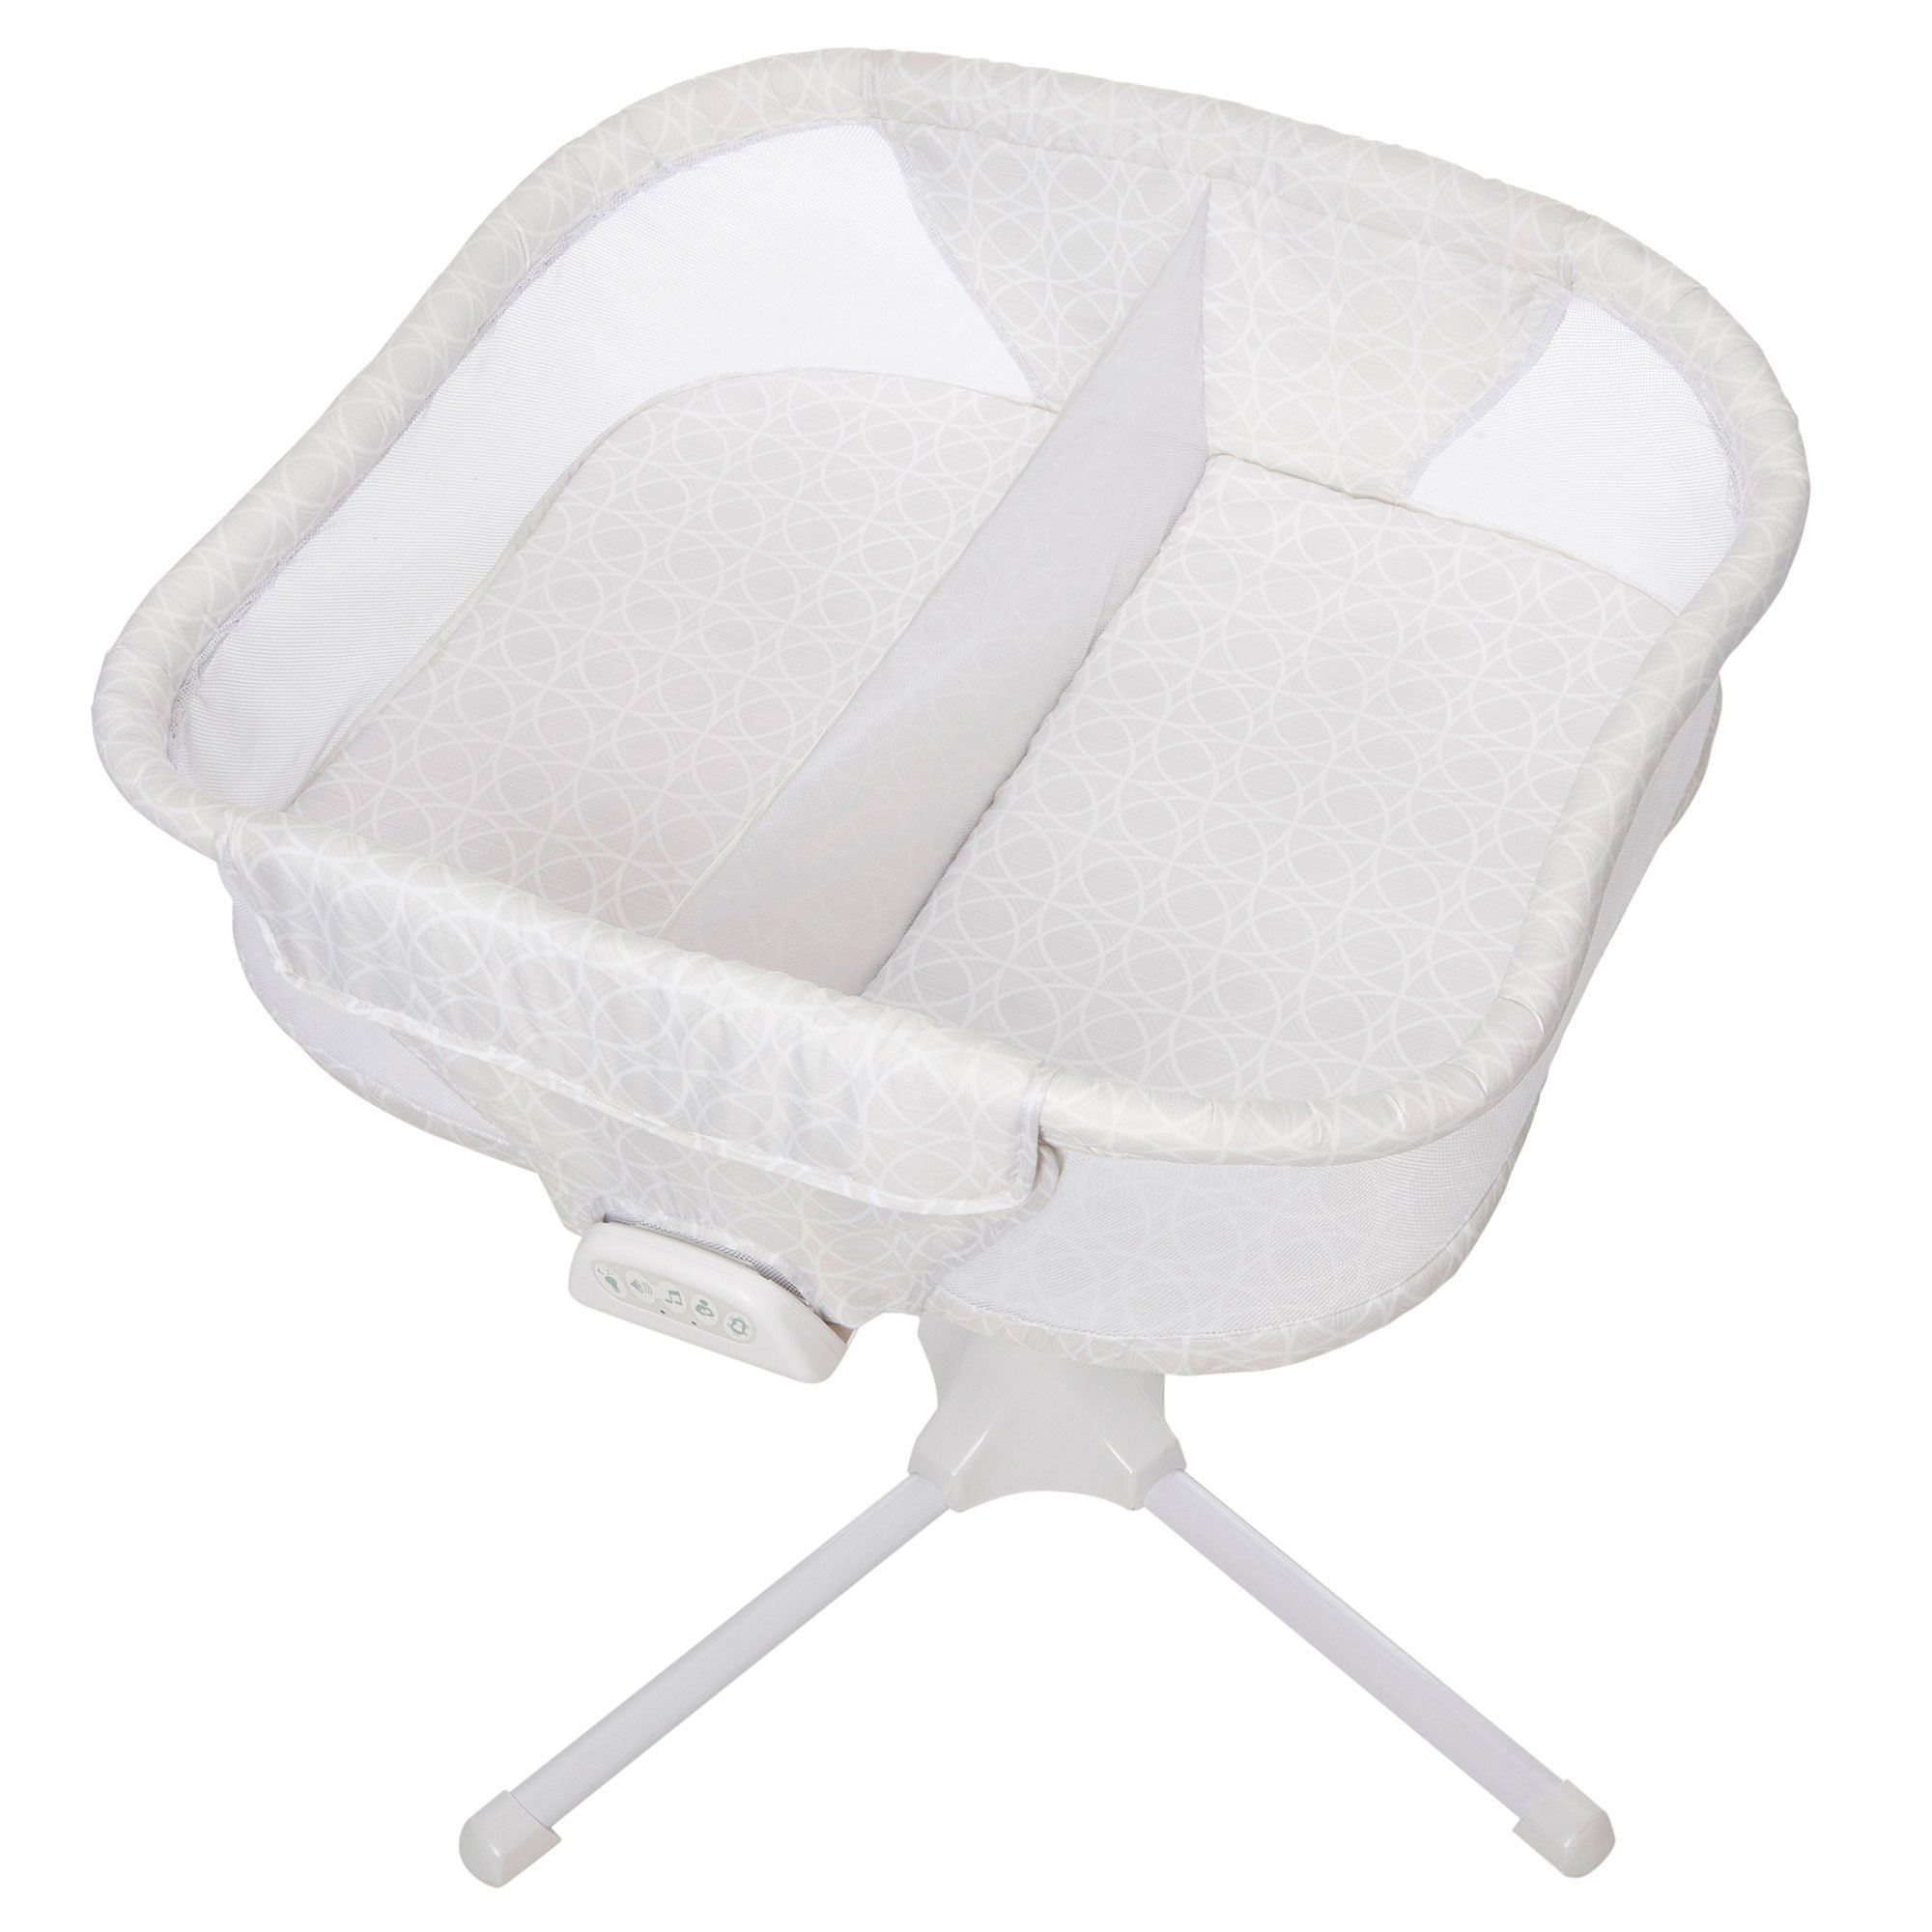 HALO Bassinest Twin Sleeper Double Bassinet - Premiere Series, Sand Circle by Halo